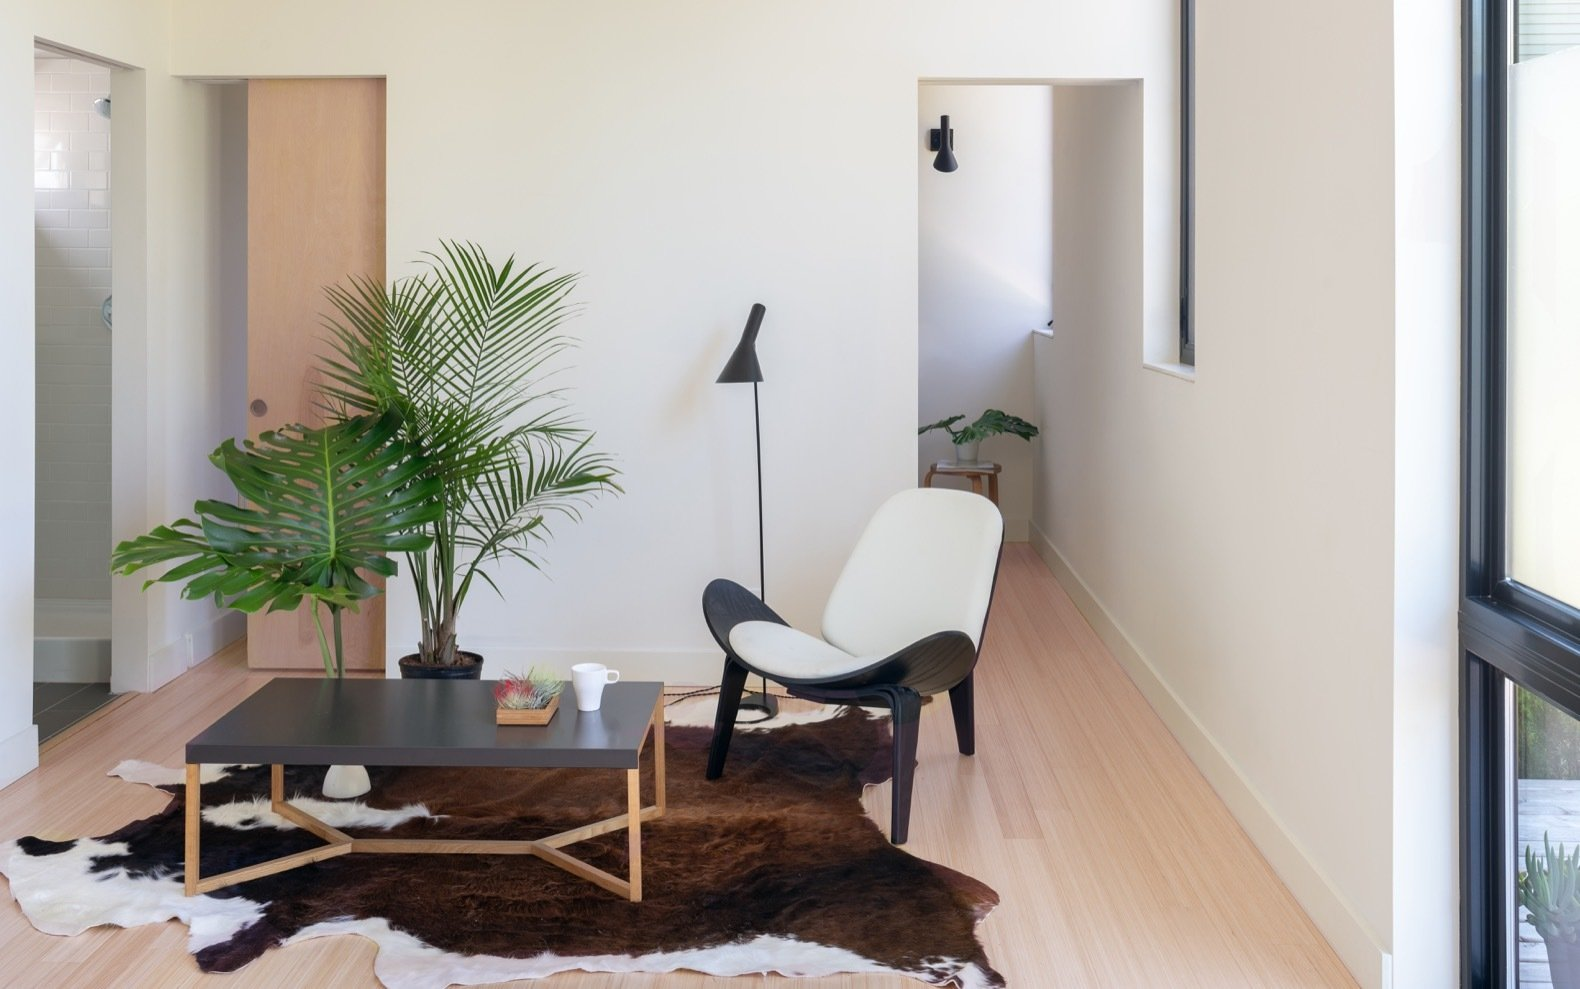 Ikea Cowhide Rug Photo 5 Of 13 In This Solar Powered Prefab In Seattle Raises The